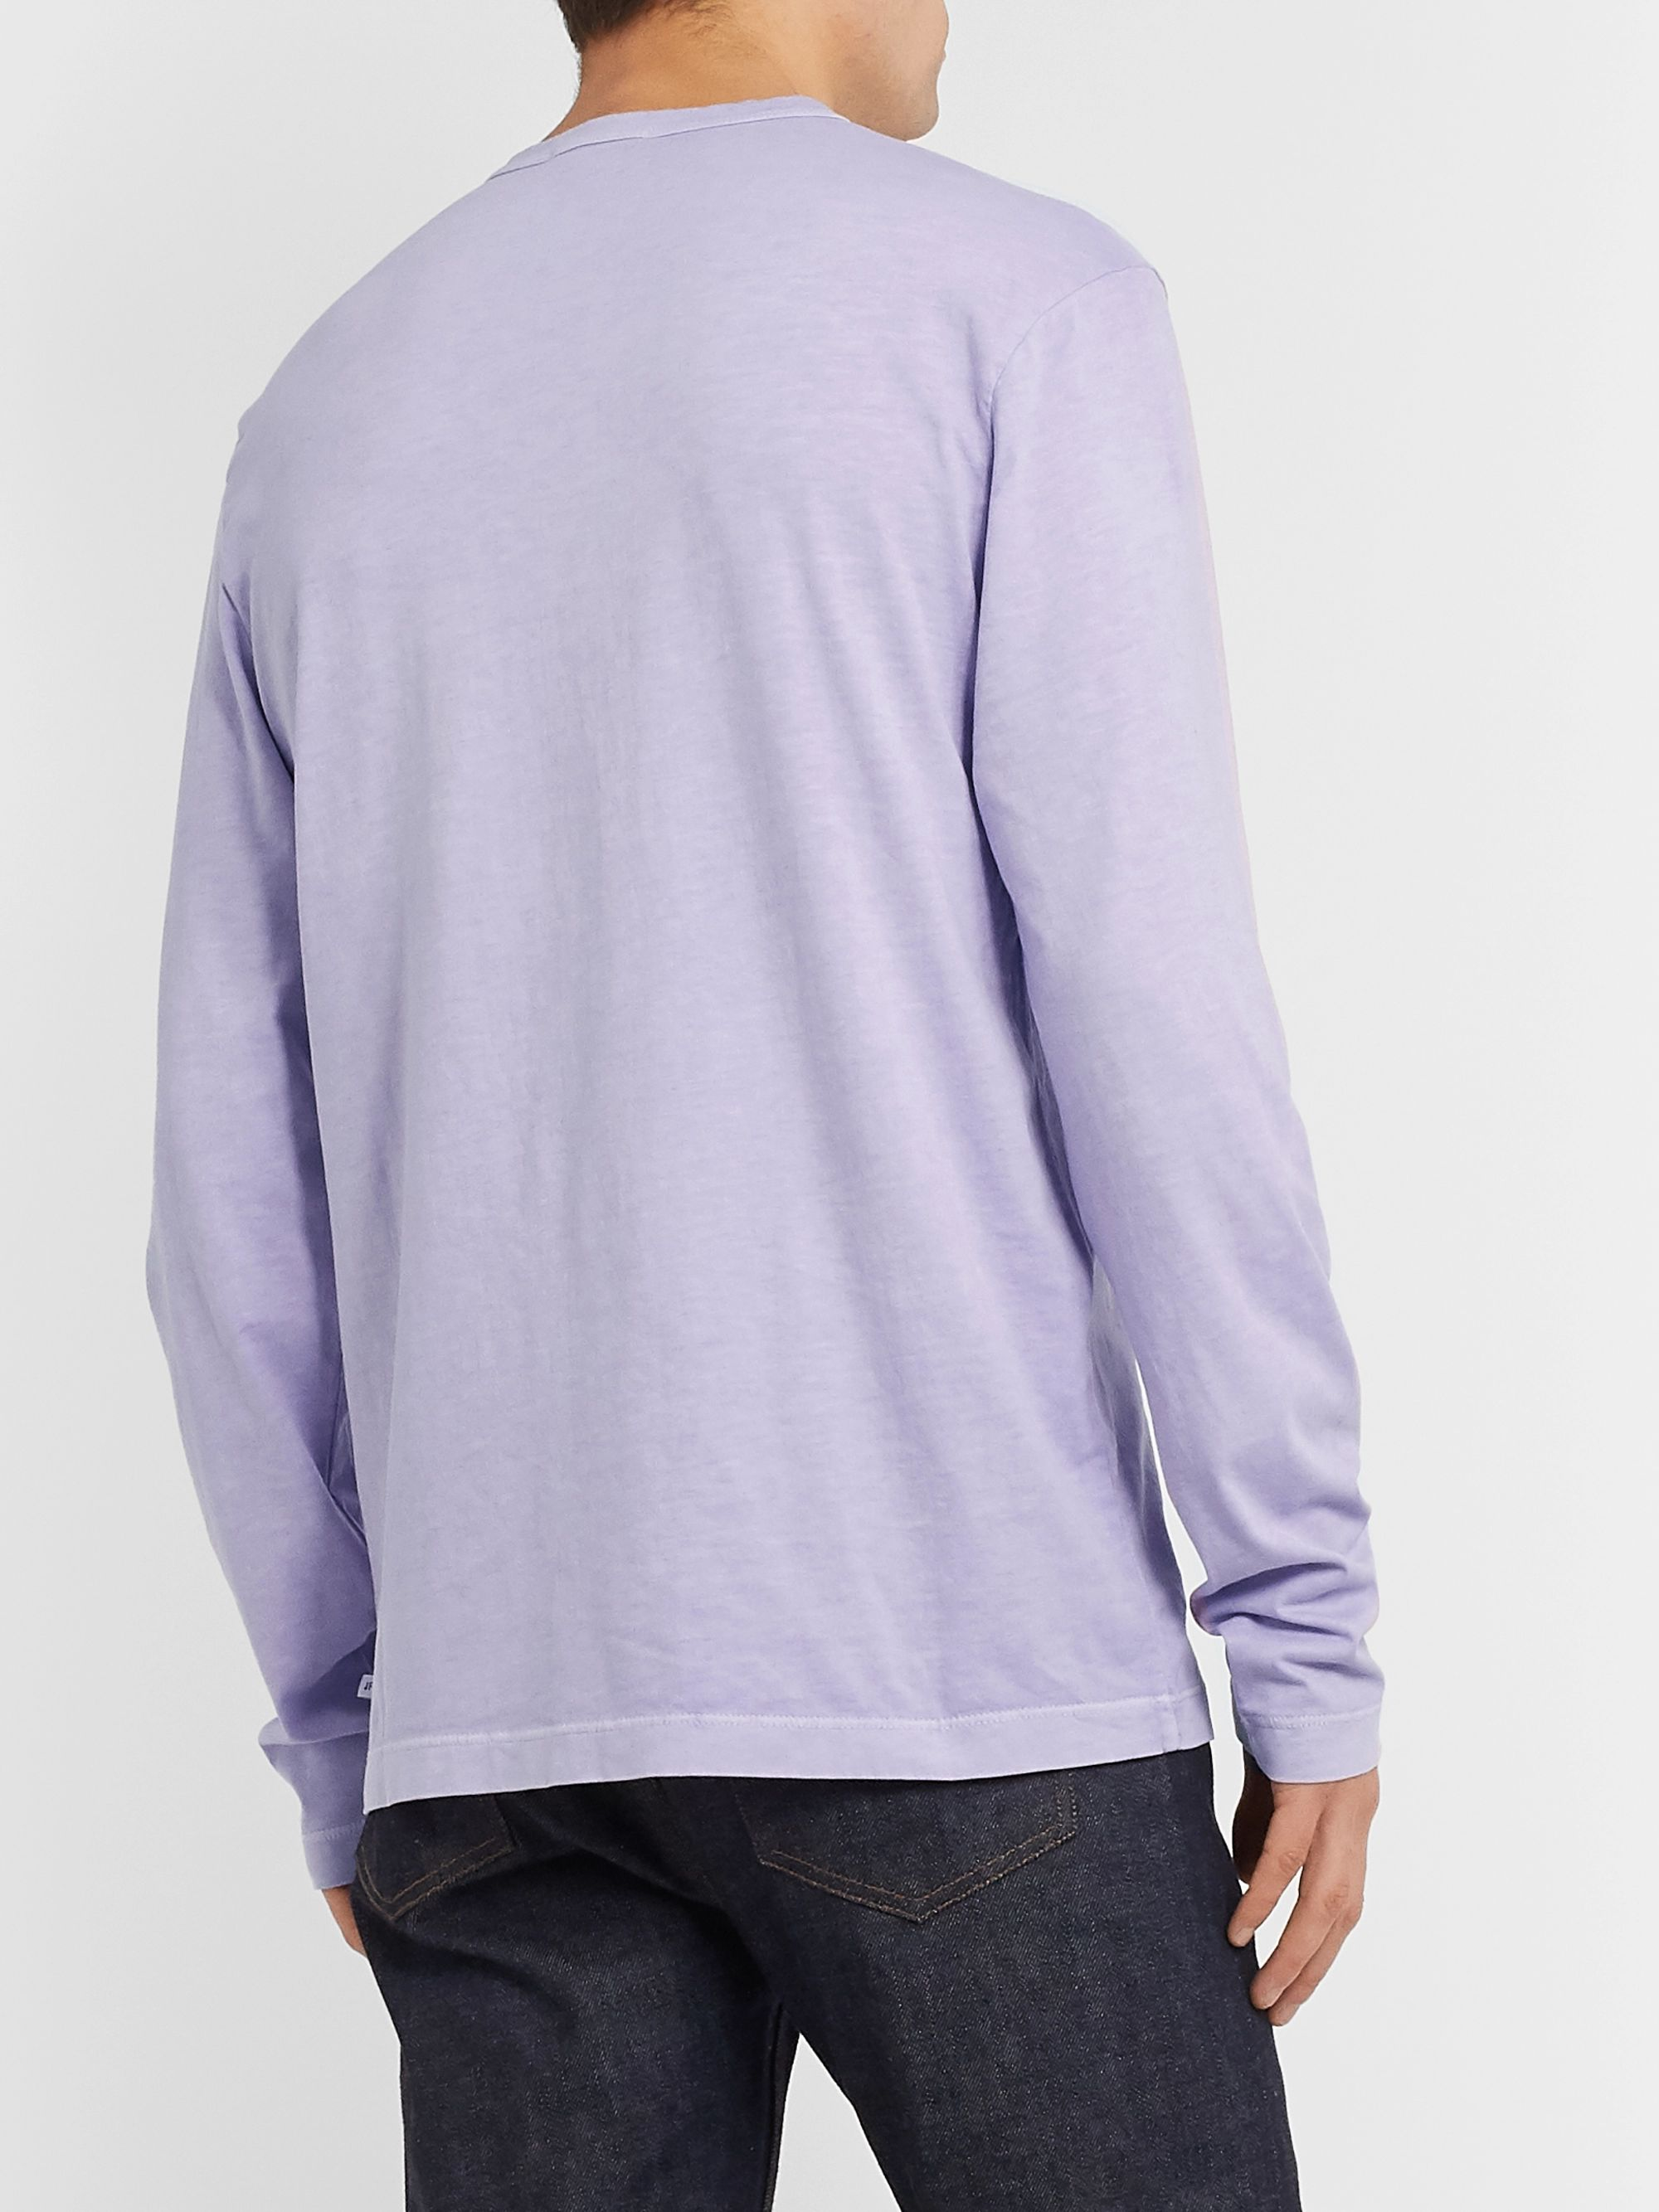 James Perse Pima Cotton-Jersey T-Shirt